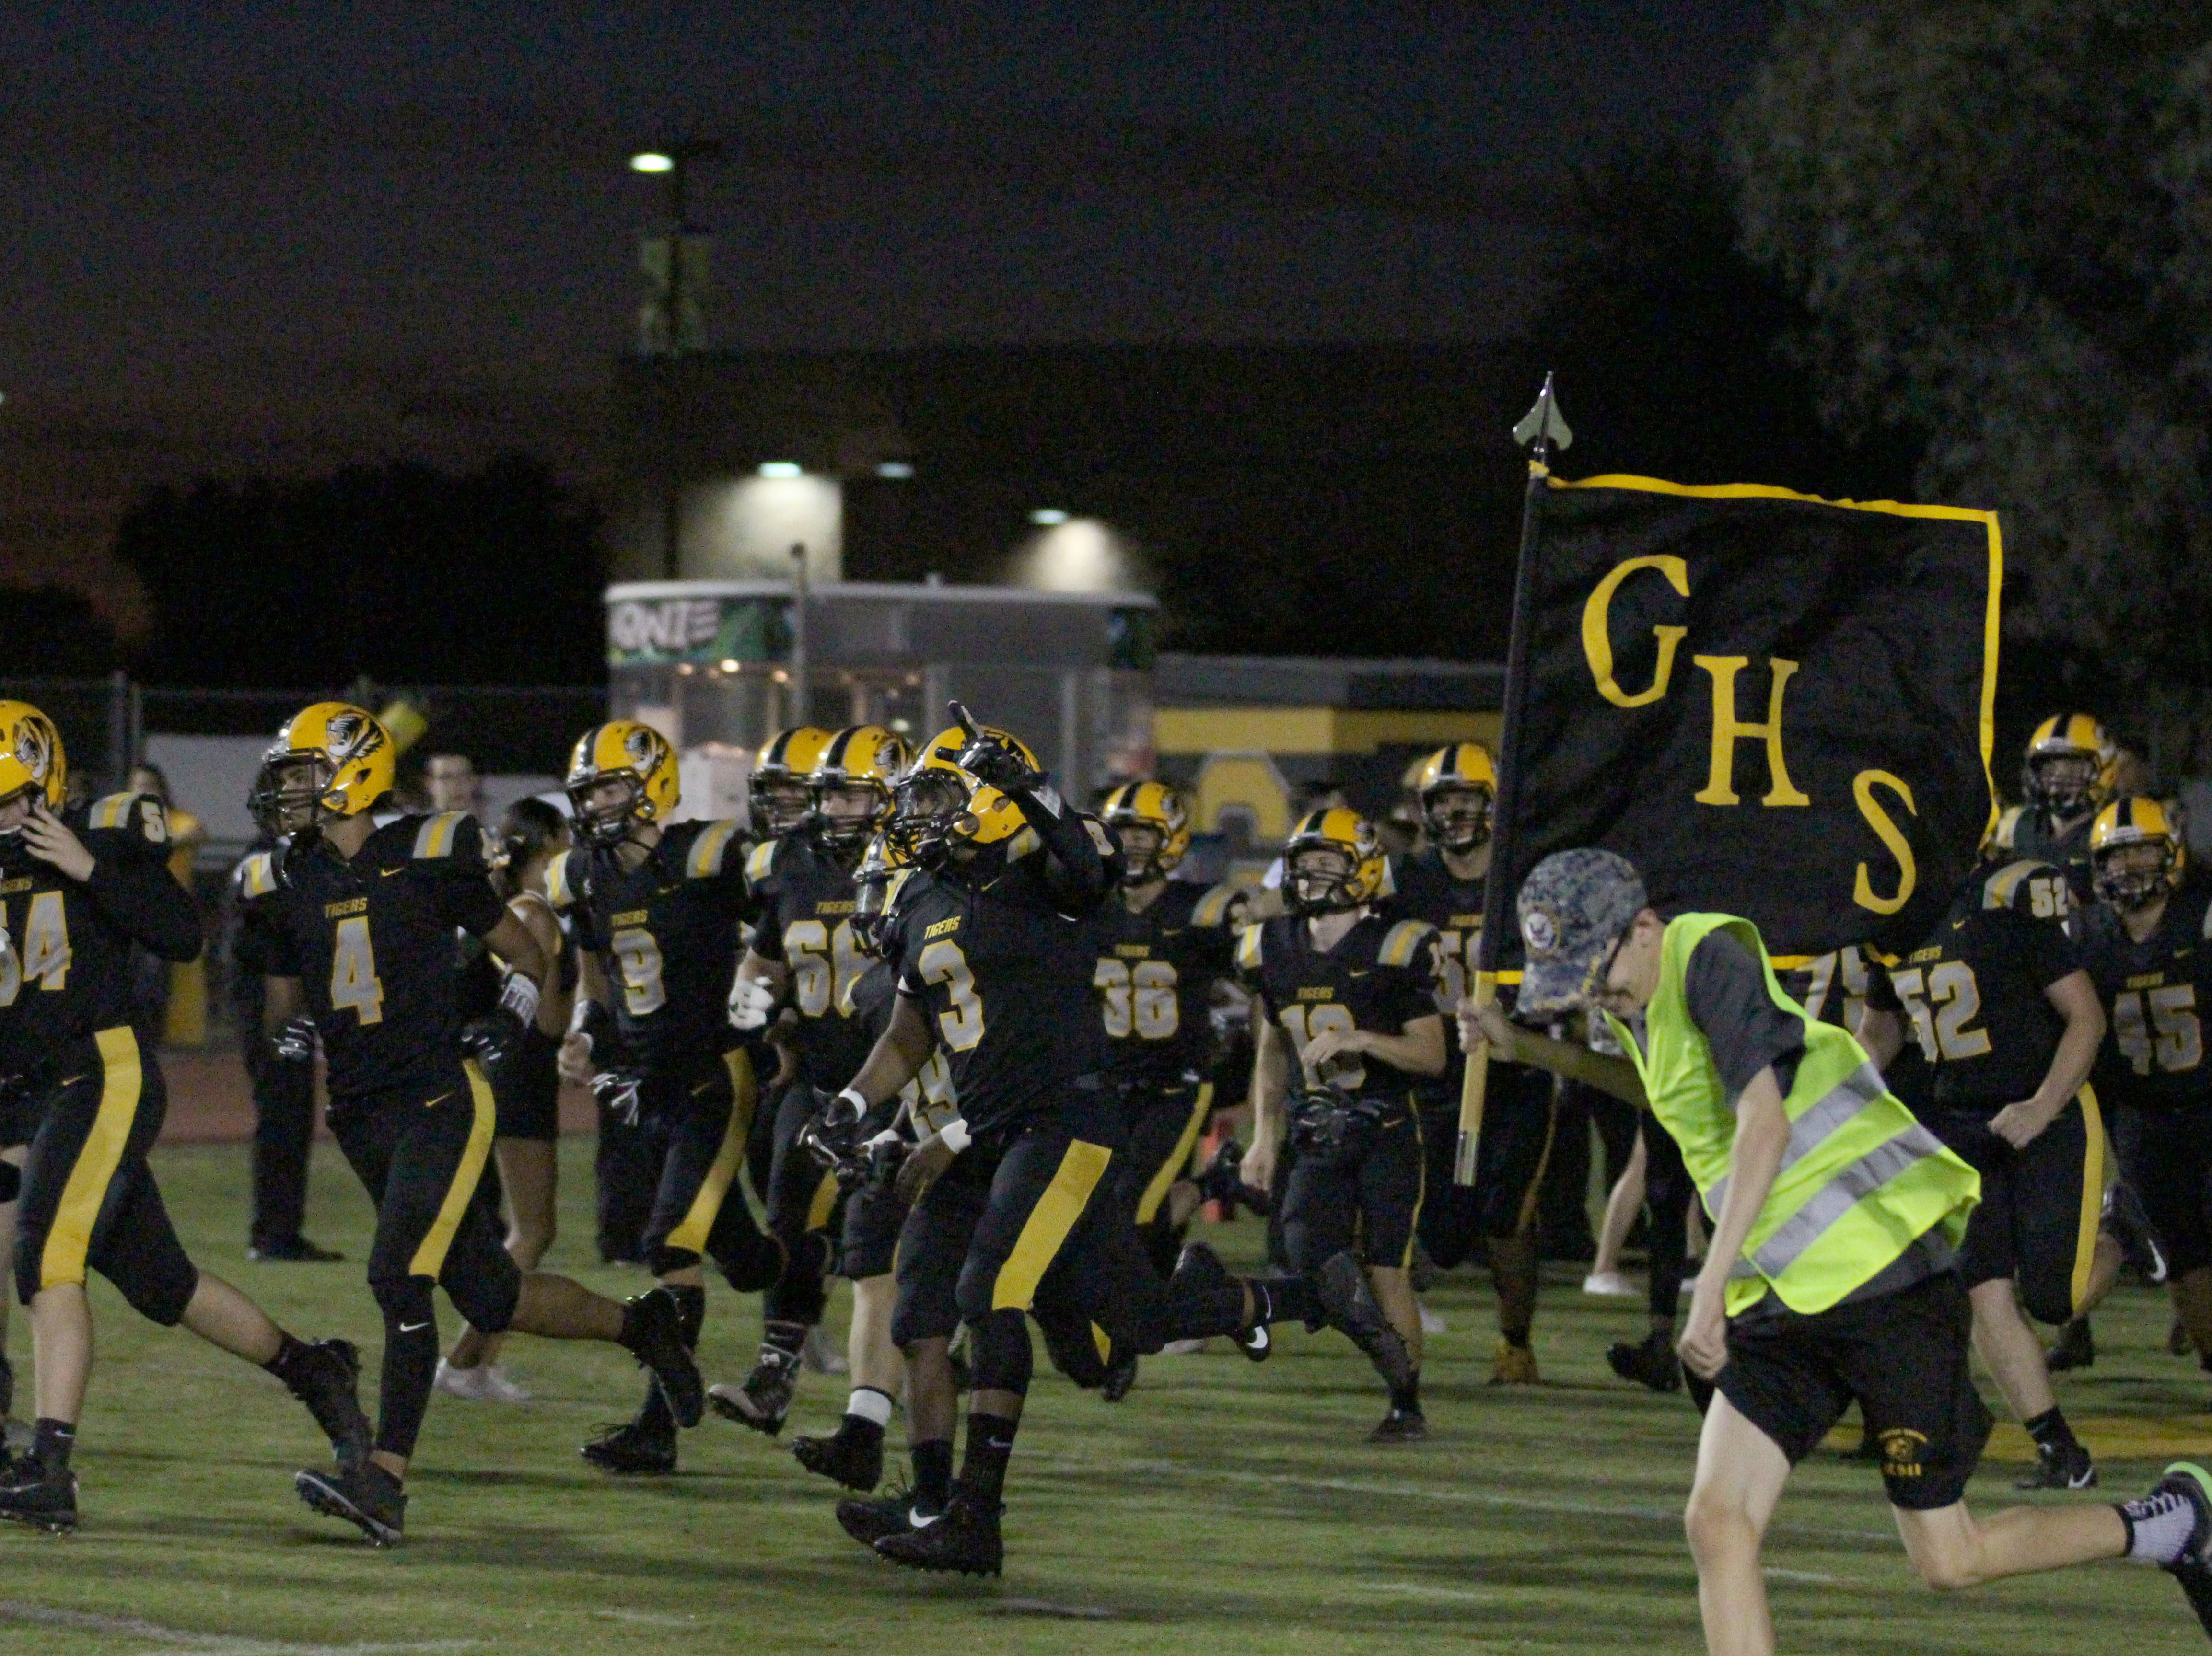 Gilbert runs onto the field before its game against Williams Field on Friday night at Gilbert High School on Sept. 28, 2018.